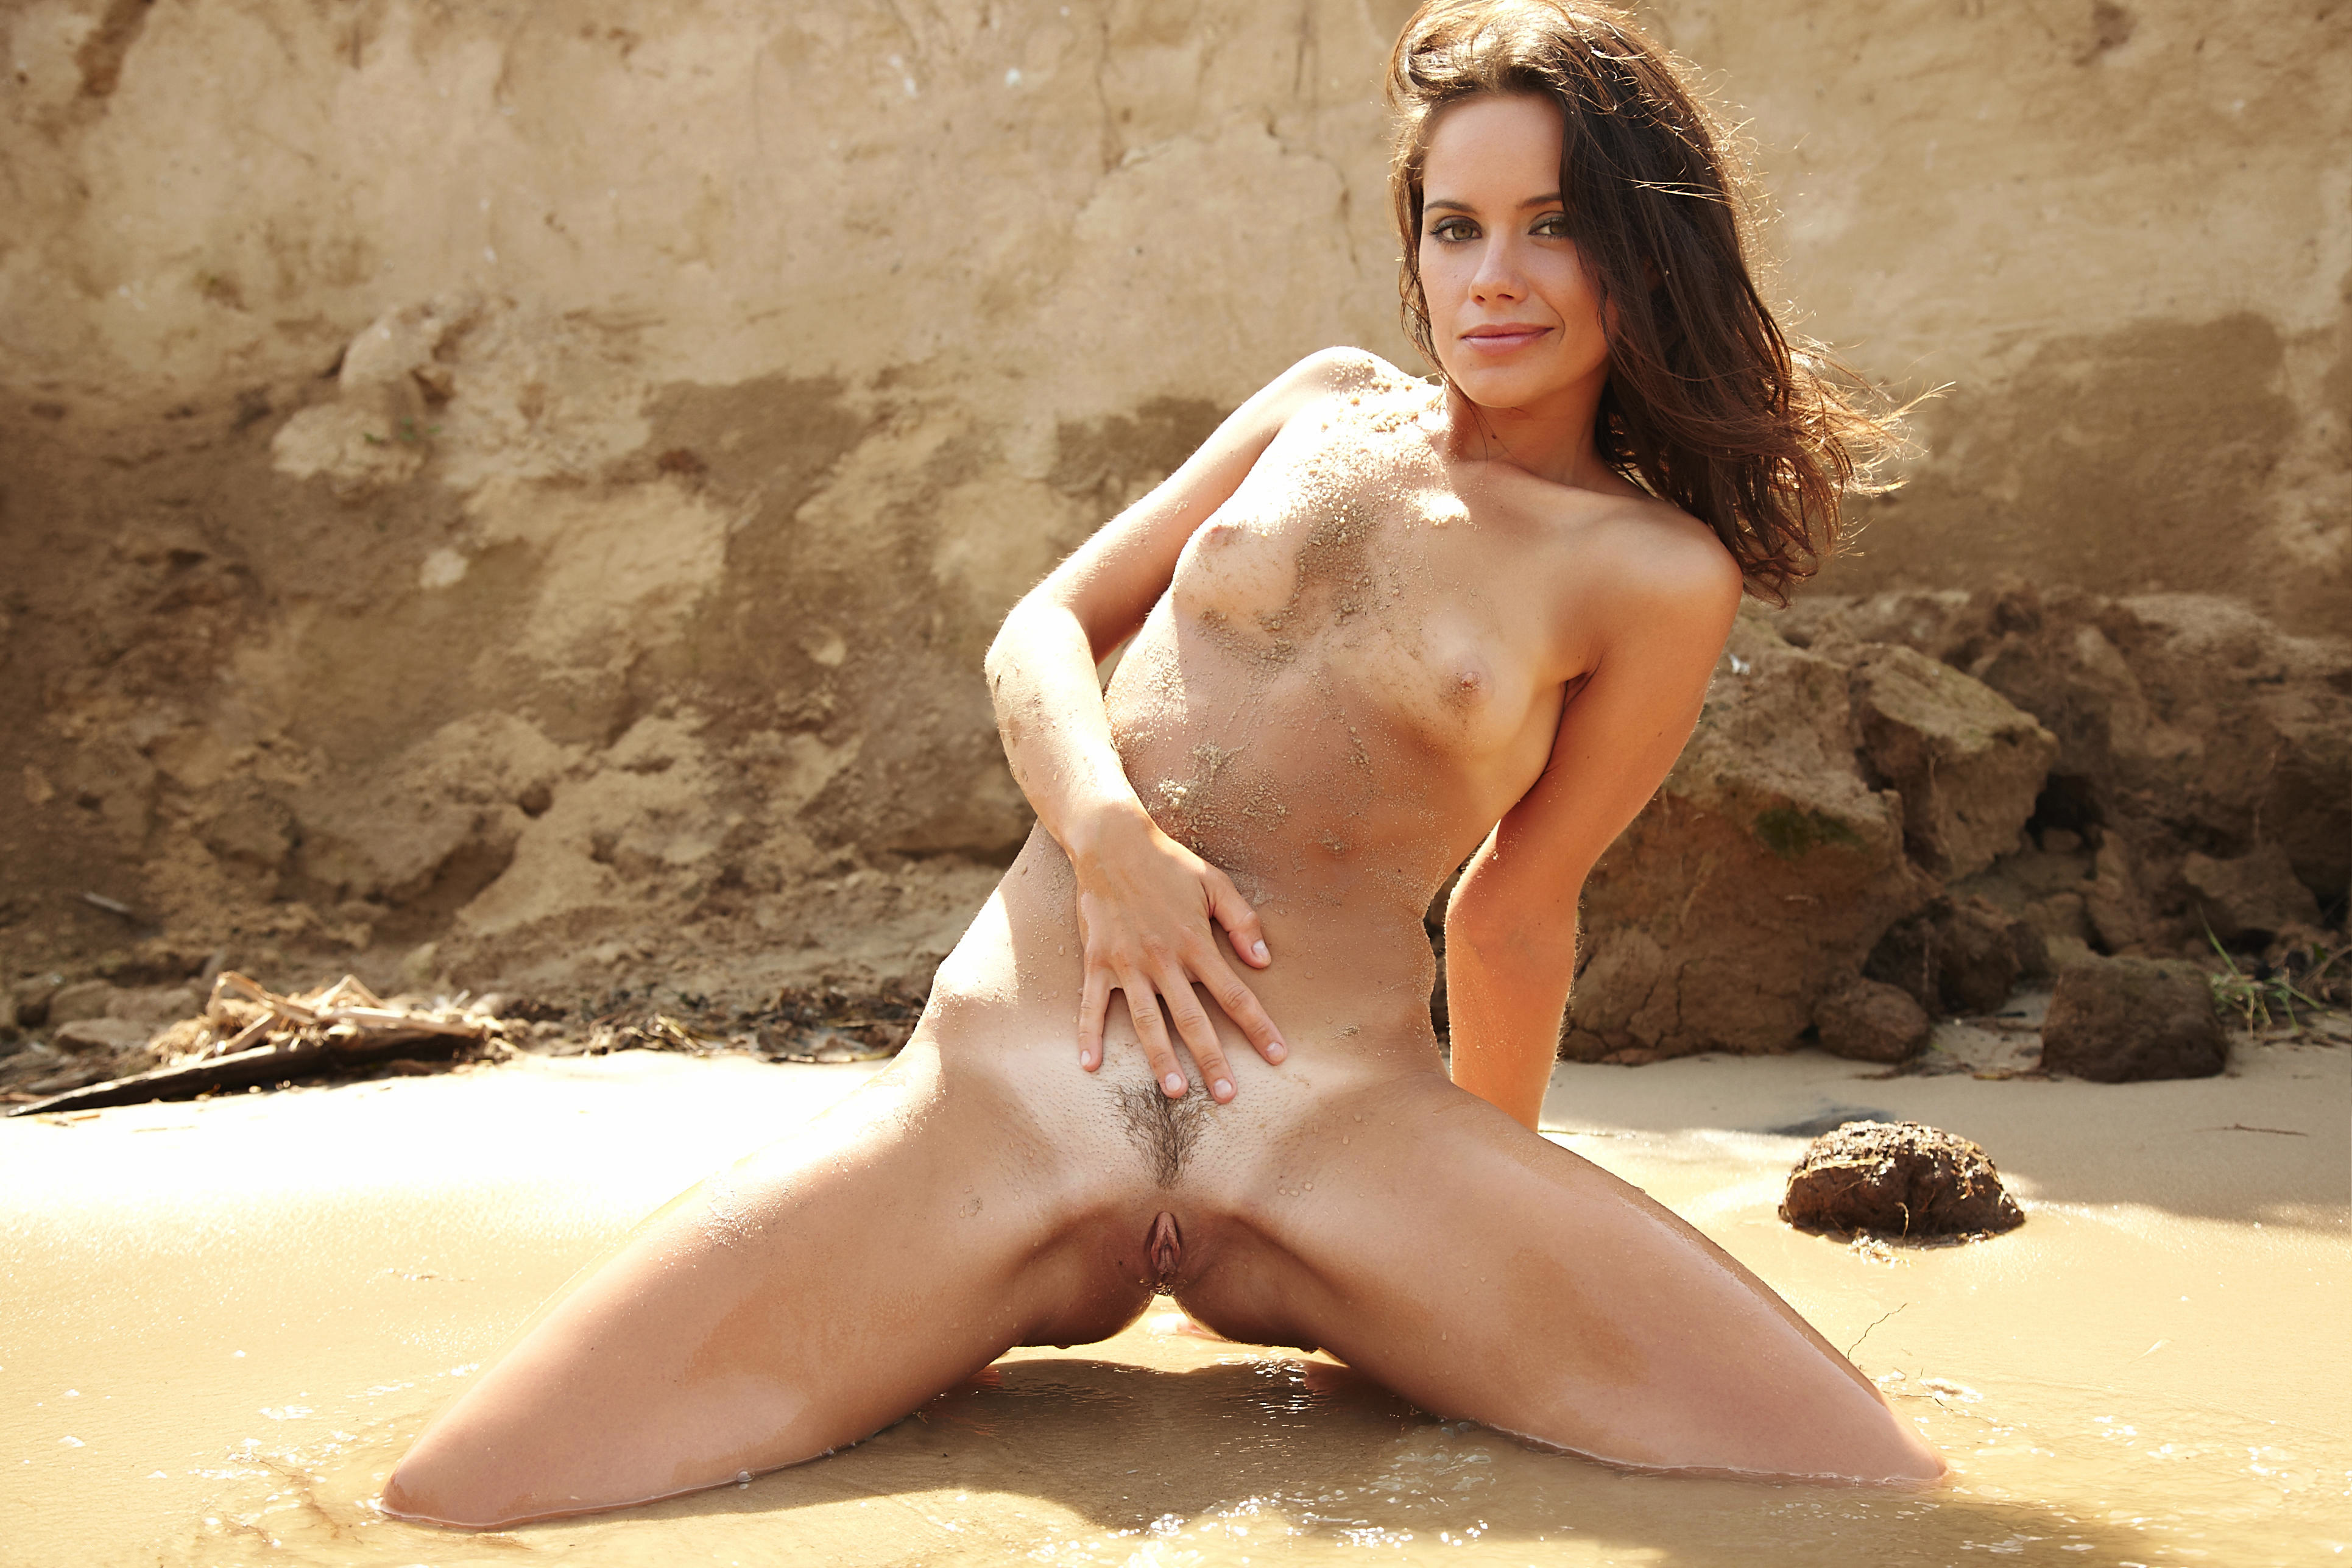 young girl bent down nude